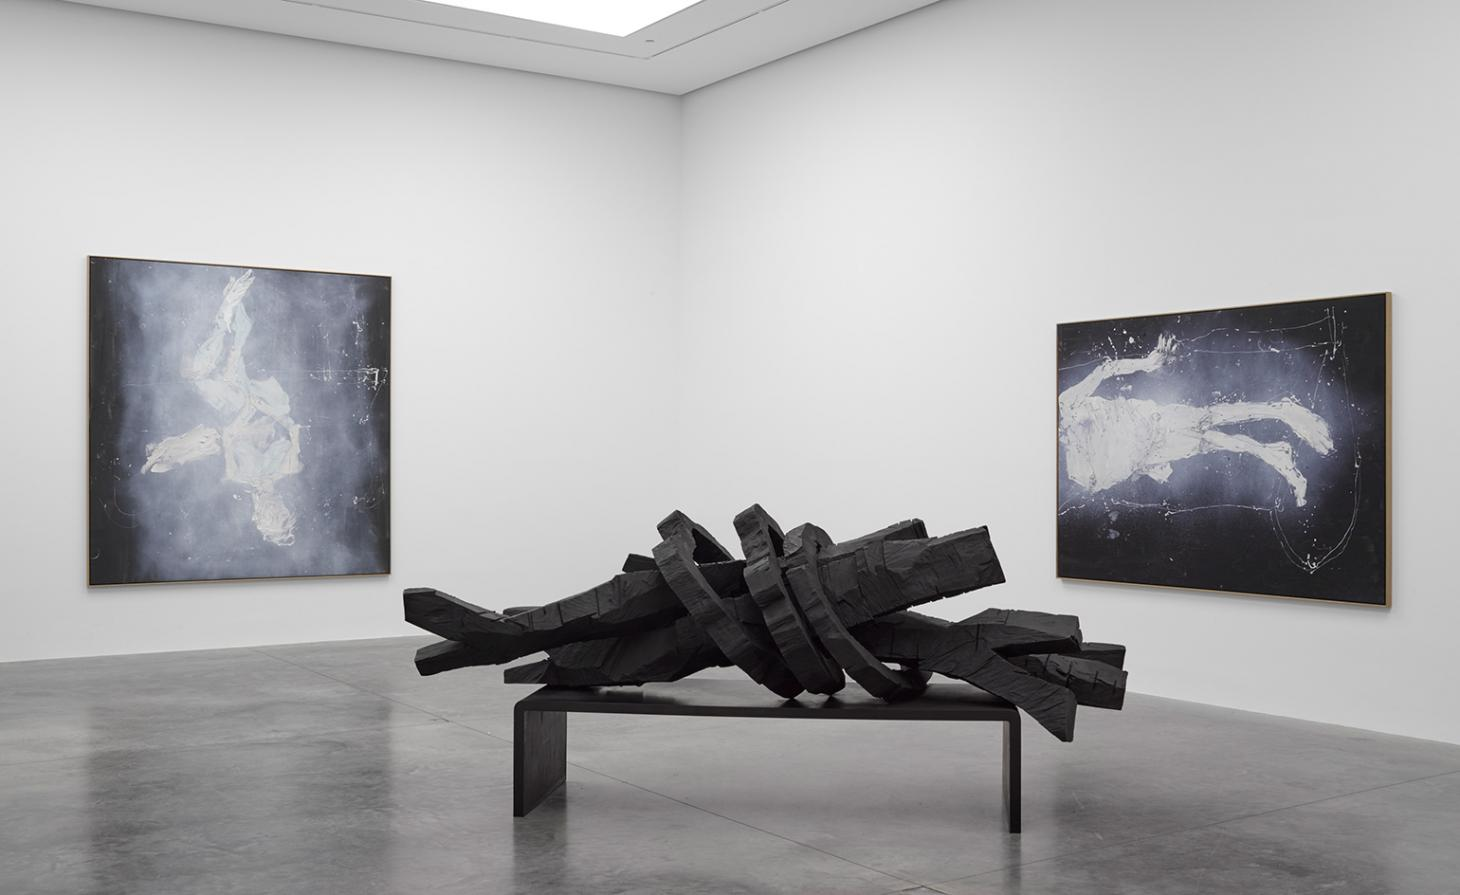 Distorted portraits: Georg Baselitz's ghostly oil works at White Cube